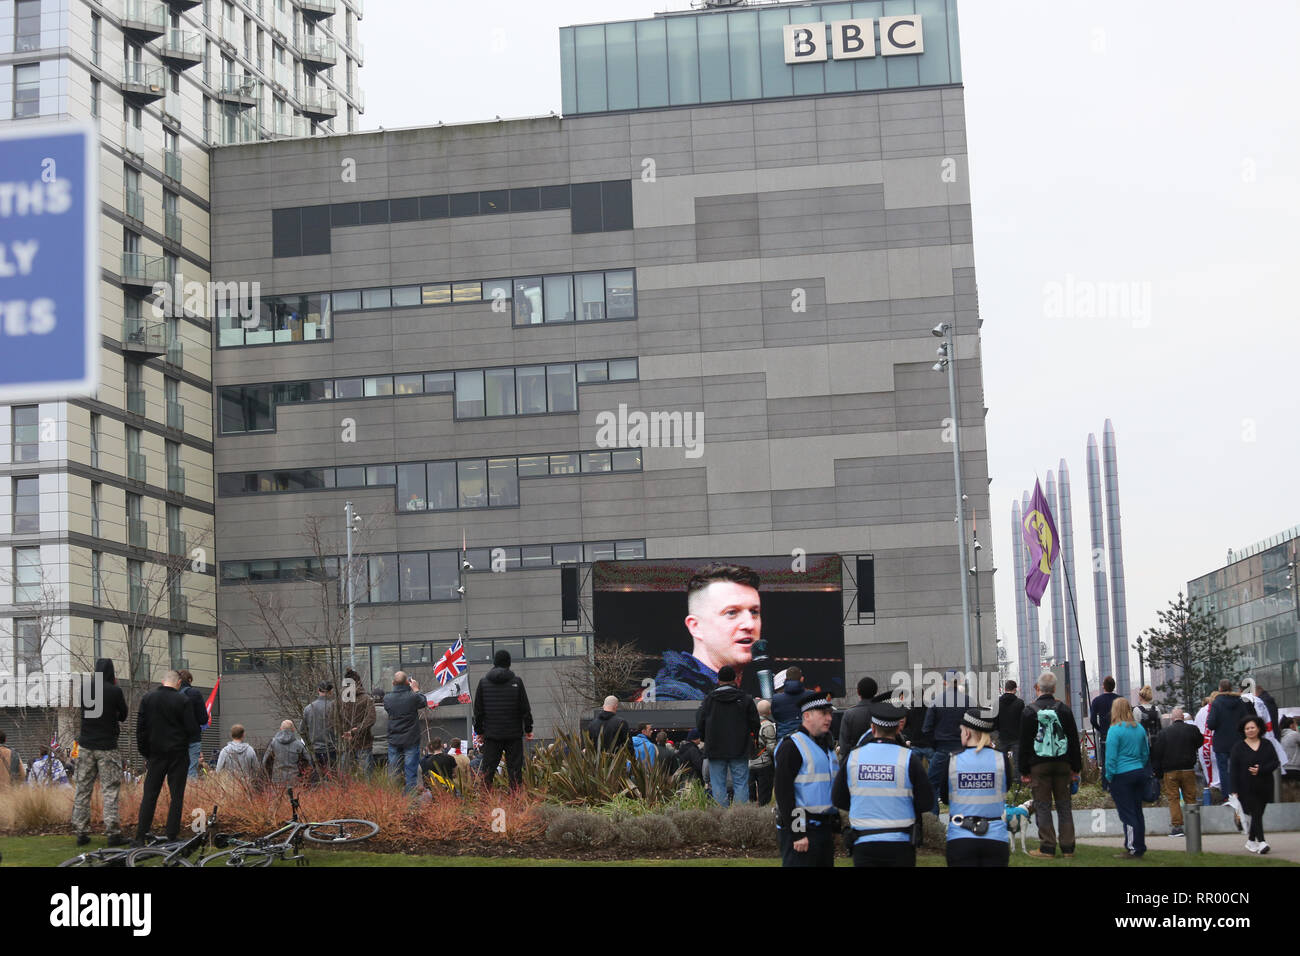 Manchester, UK. 23rd Feb, 2019. A big screen set up by former EDL leader Tommy Robinson outside the BBC, Media City, Salford, UK. 23rd Feb, 2019. (C)Barbara Cook/Alamy Live News Credit: Barbara Cook/Alamy Live News Credit: Barbara Cook/Alamy Live News - Stock Image